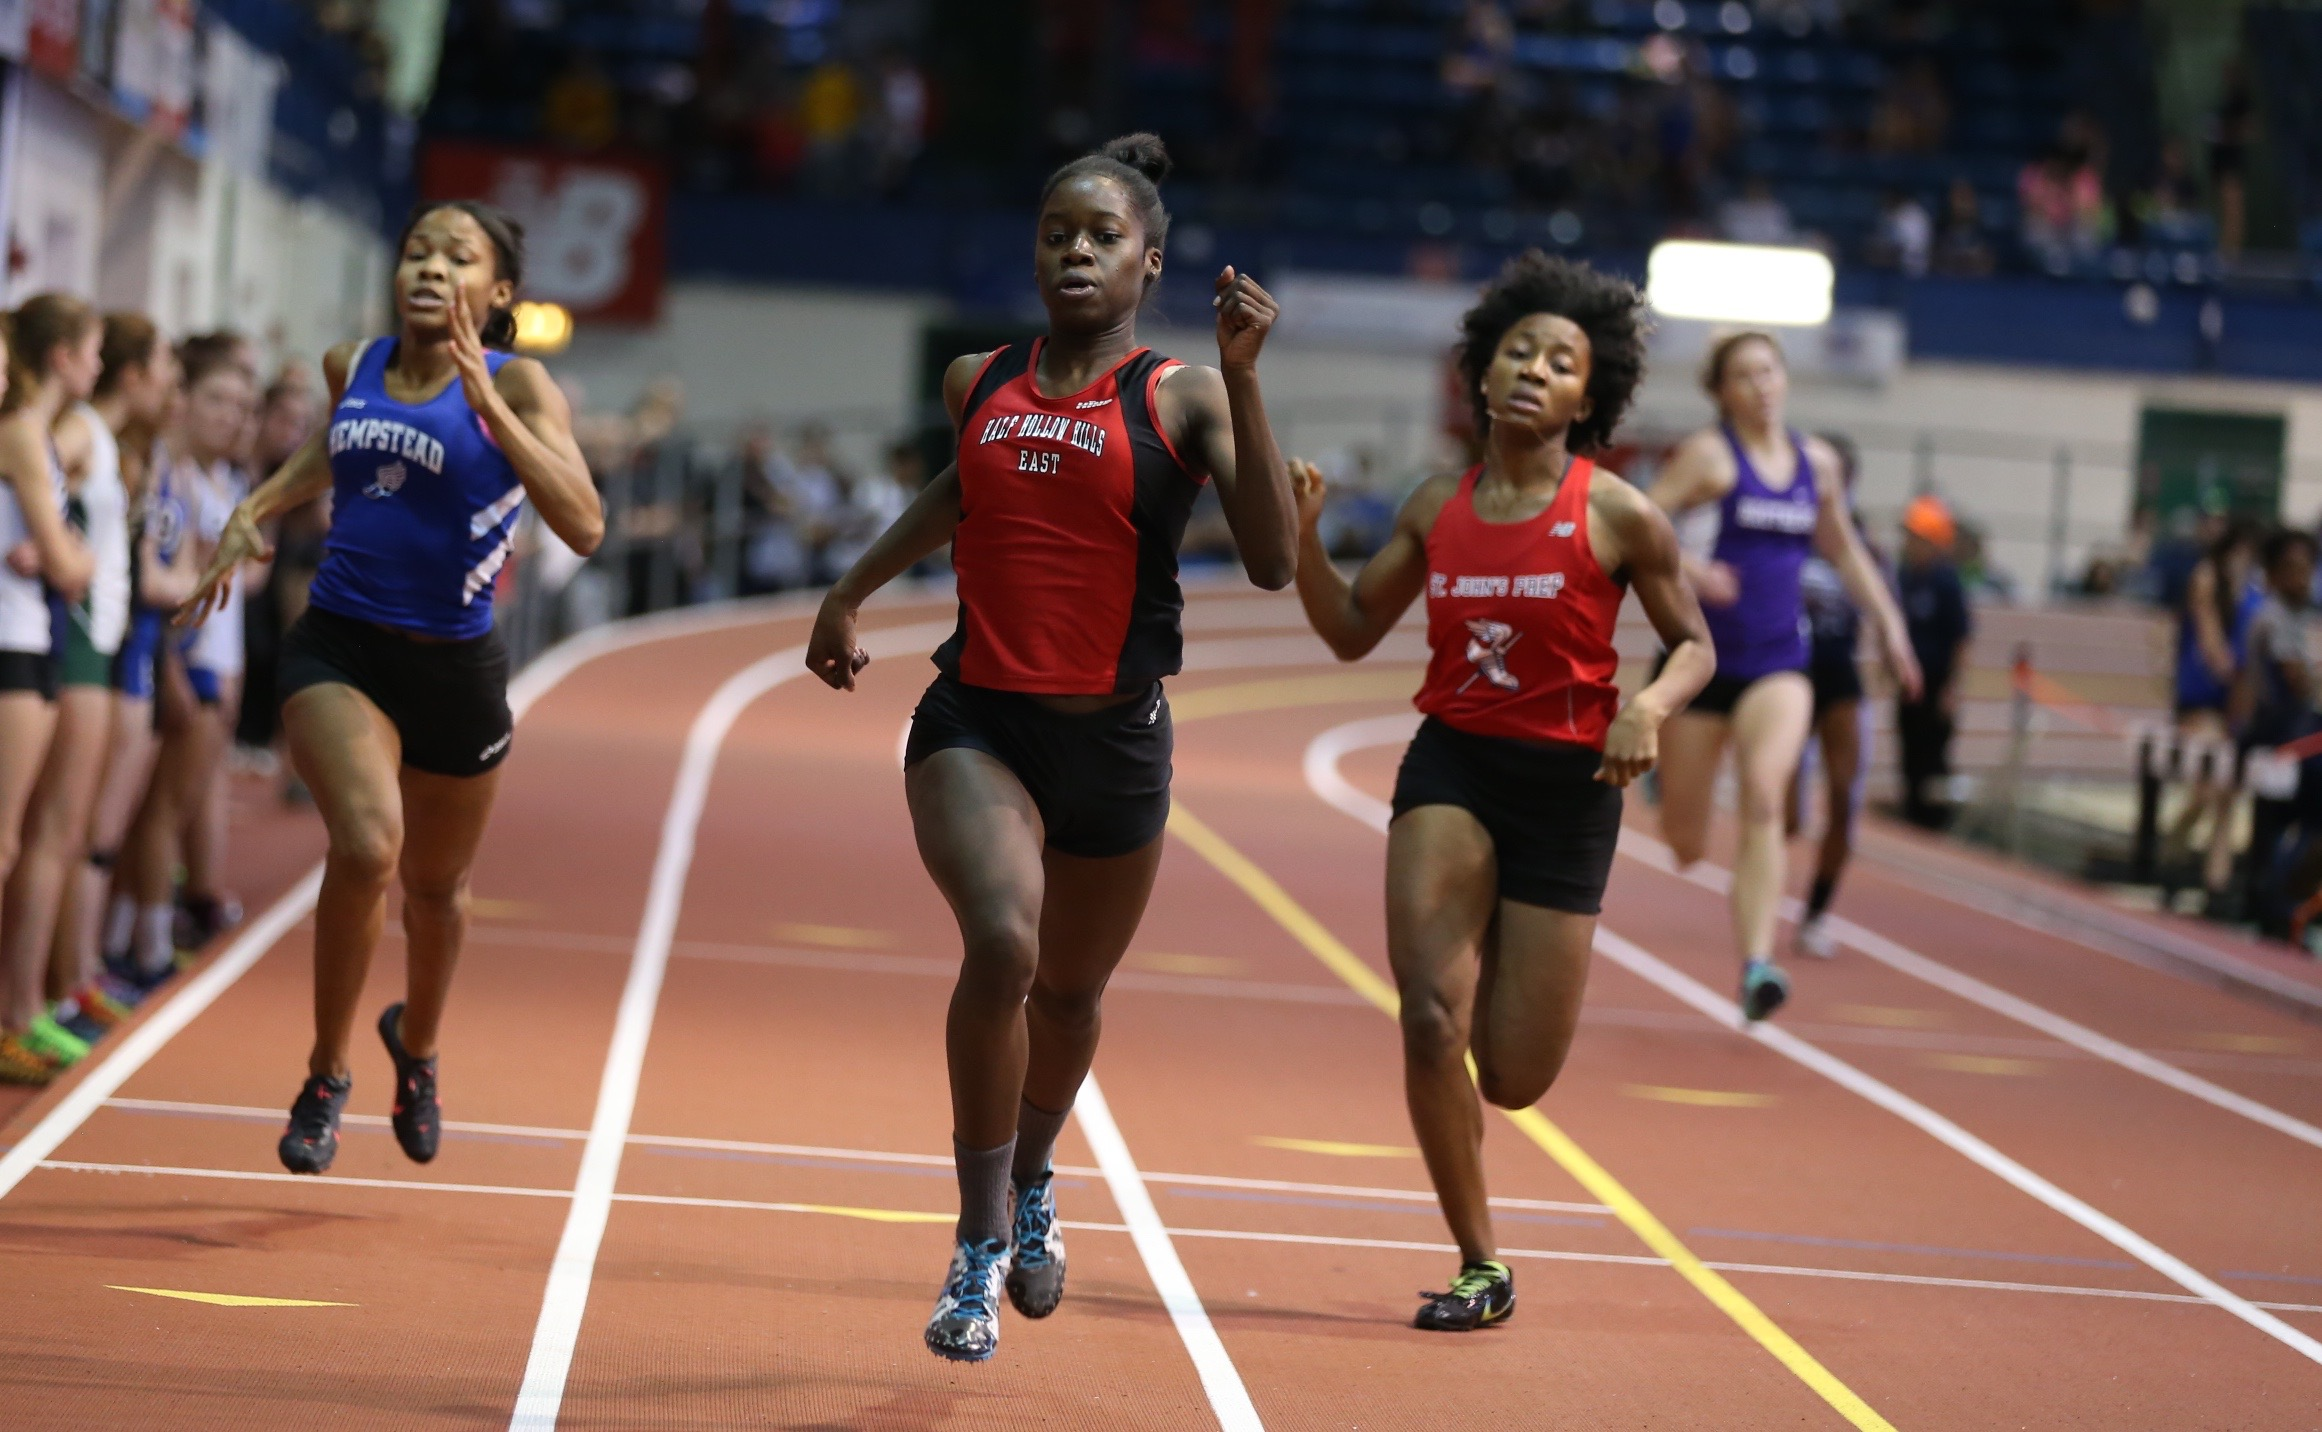 Mary Chimezie, a High School East senior, races the 300-meter at the Molloy Stanner Games in Manhattan earlier this month. She finished in 39.49 seconds, which is the fifth-fastest time in the country this winter season.